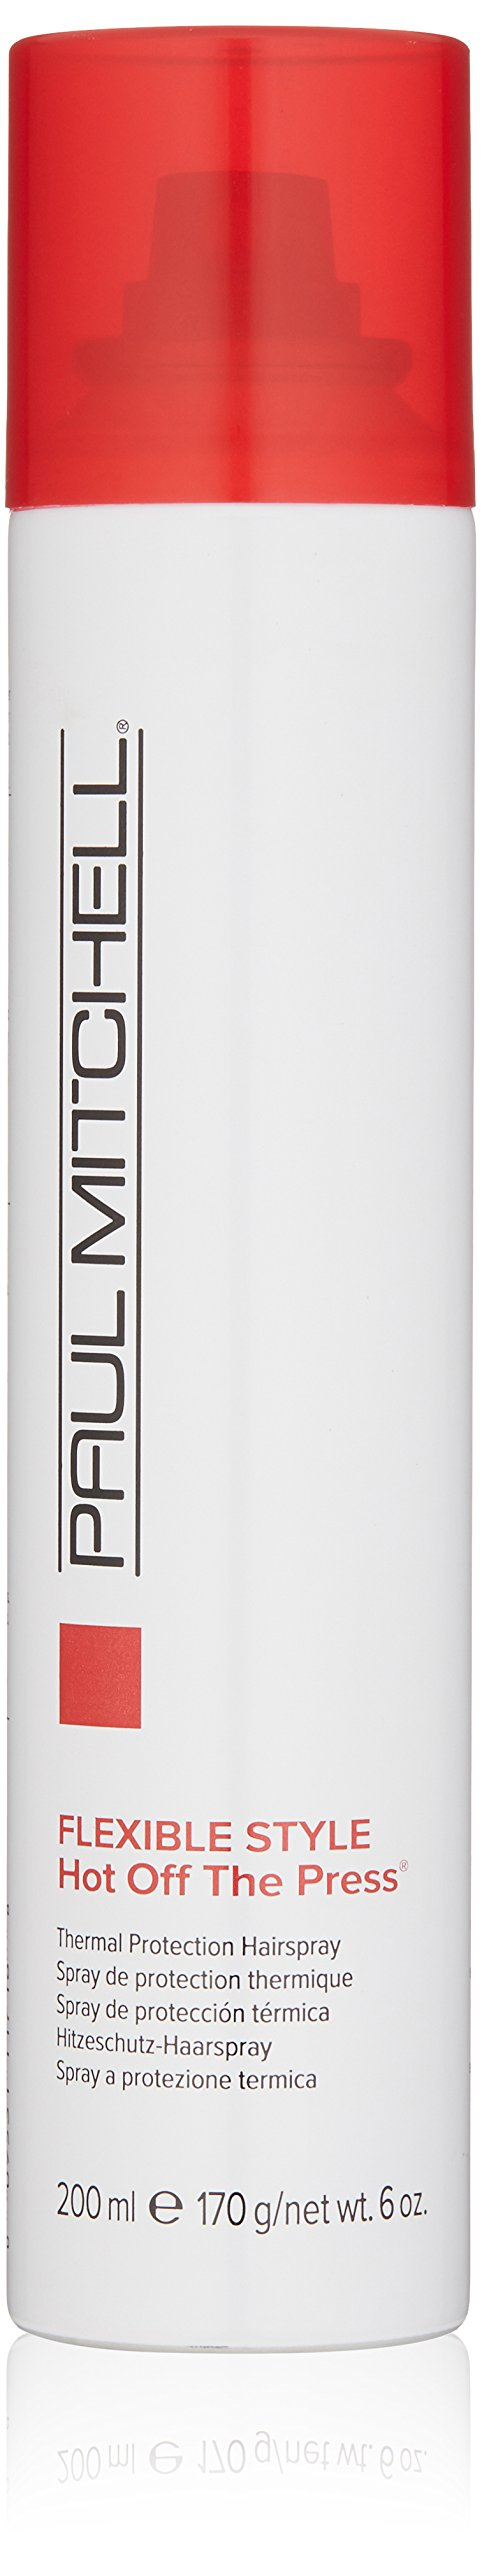 Paul Mitchell Hot Off The Press Thermal Protection Spray,6 oz by Paul Mitchell